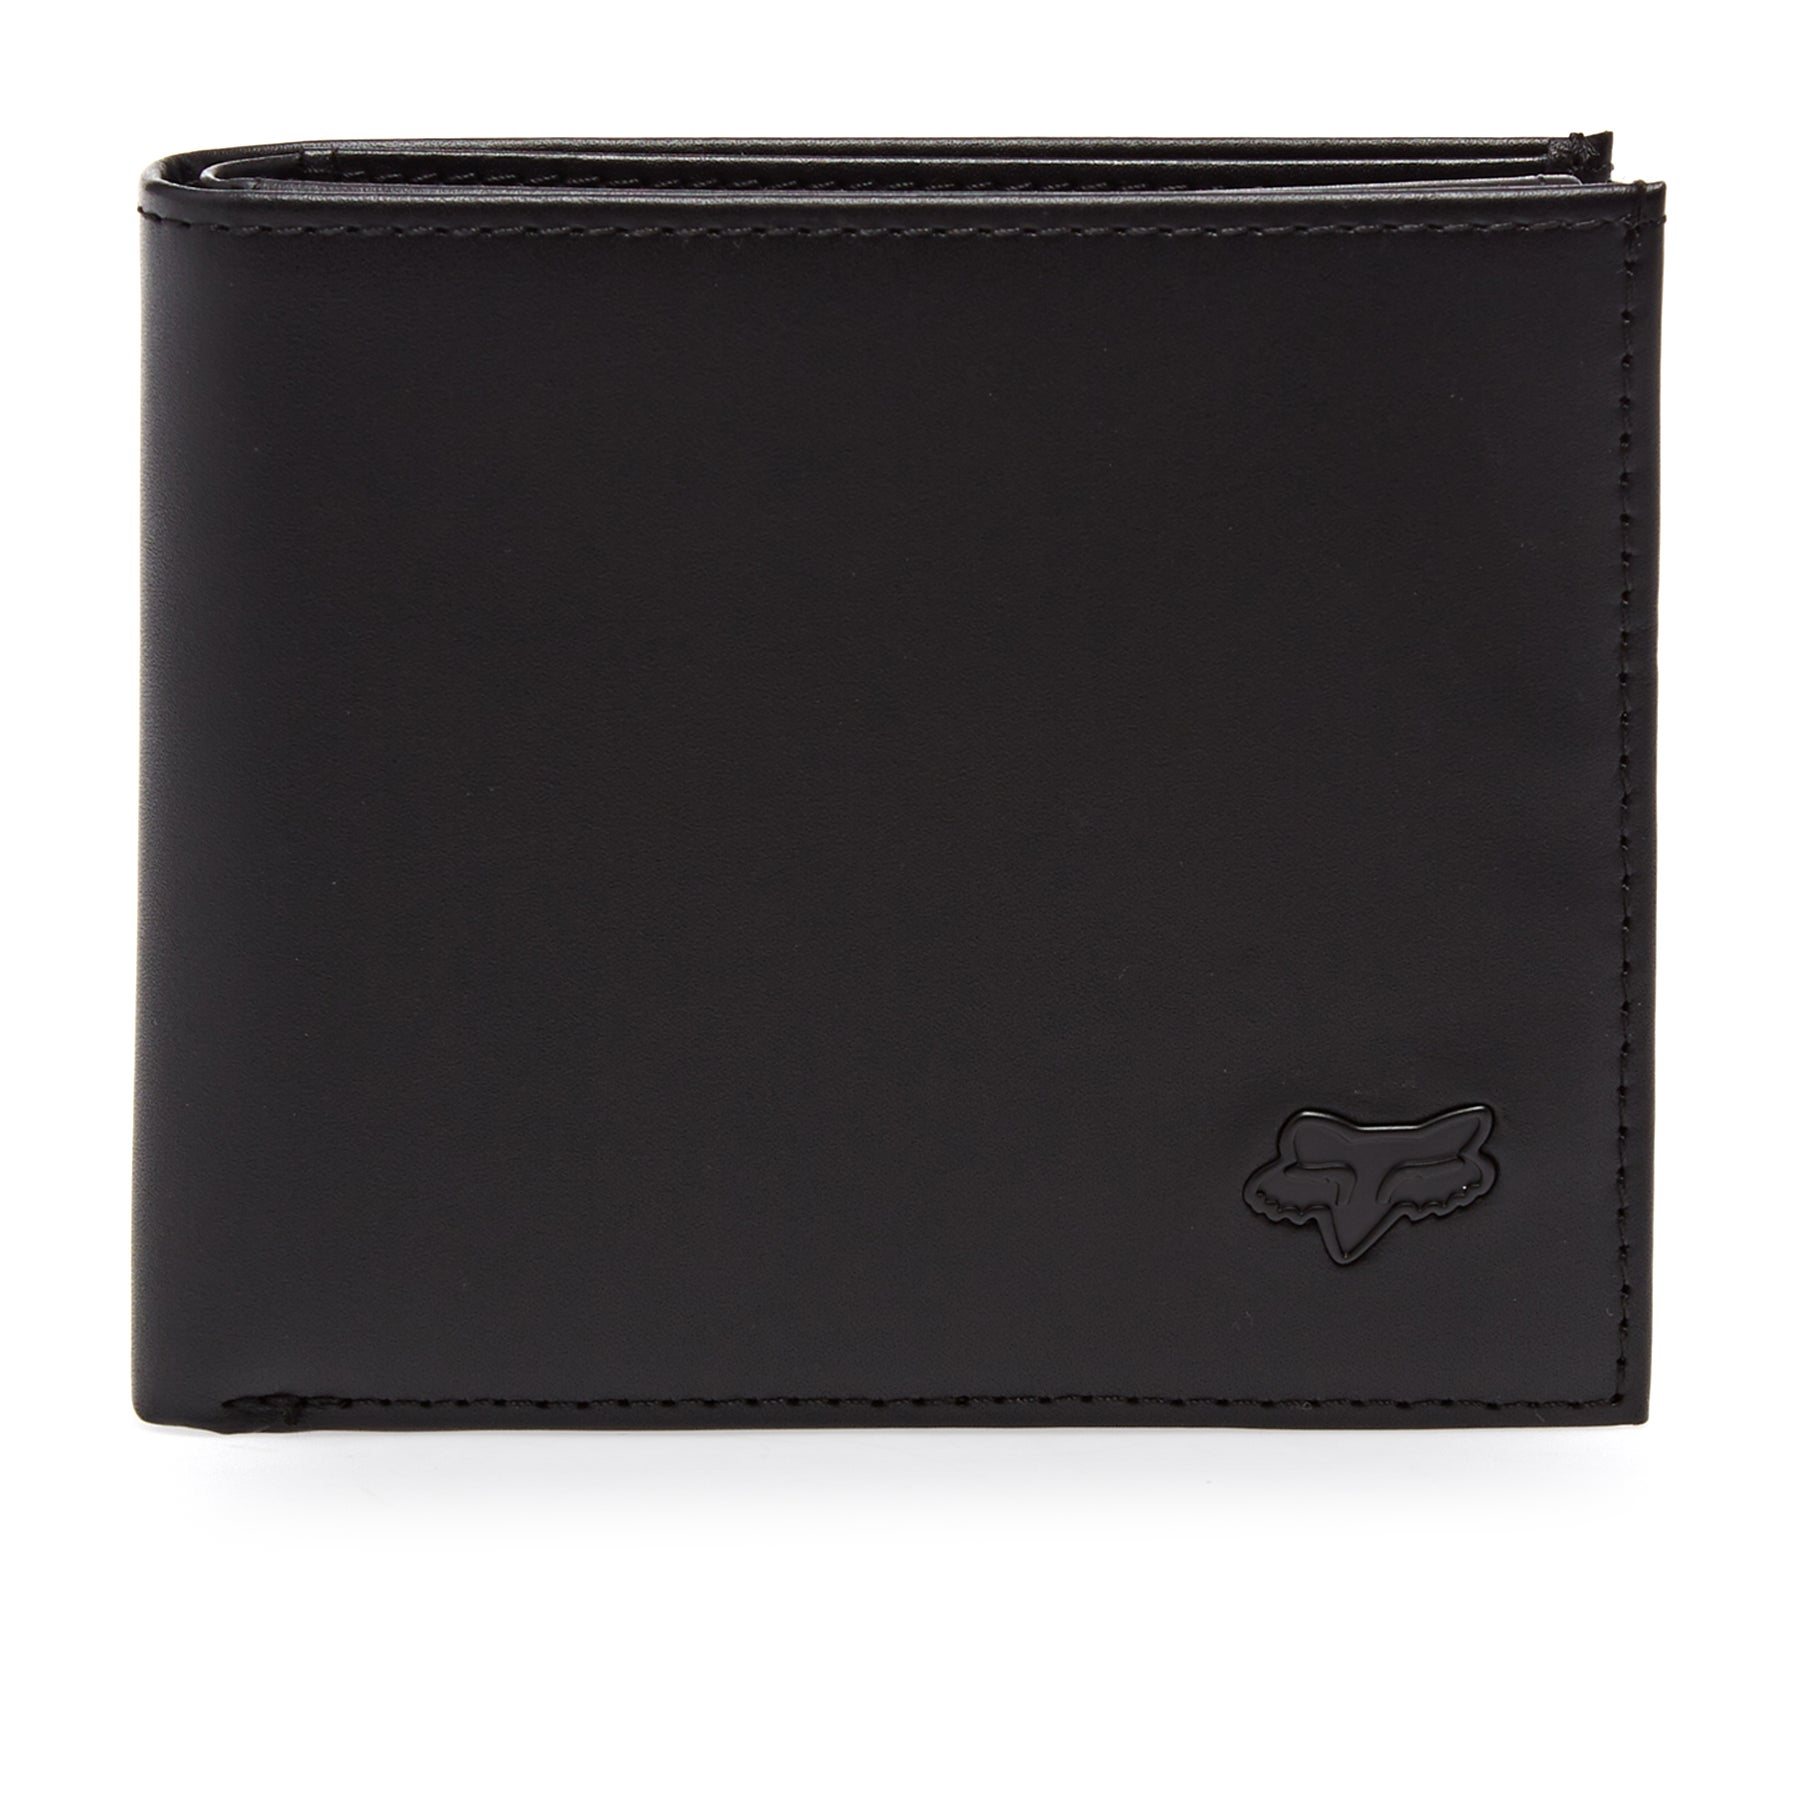 Fox Racing Bifold Leather Wallet - Black